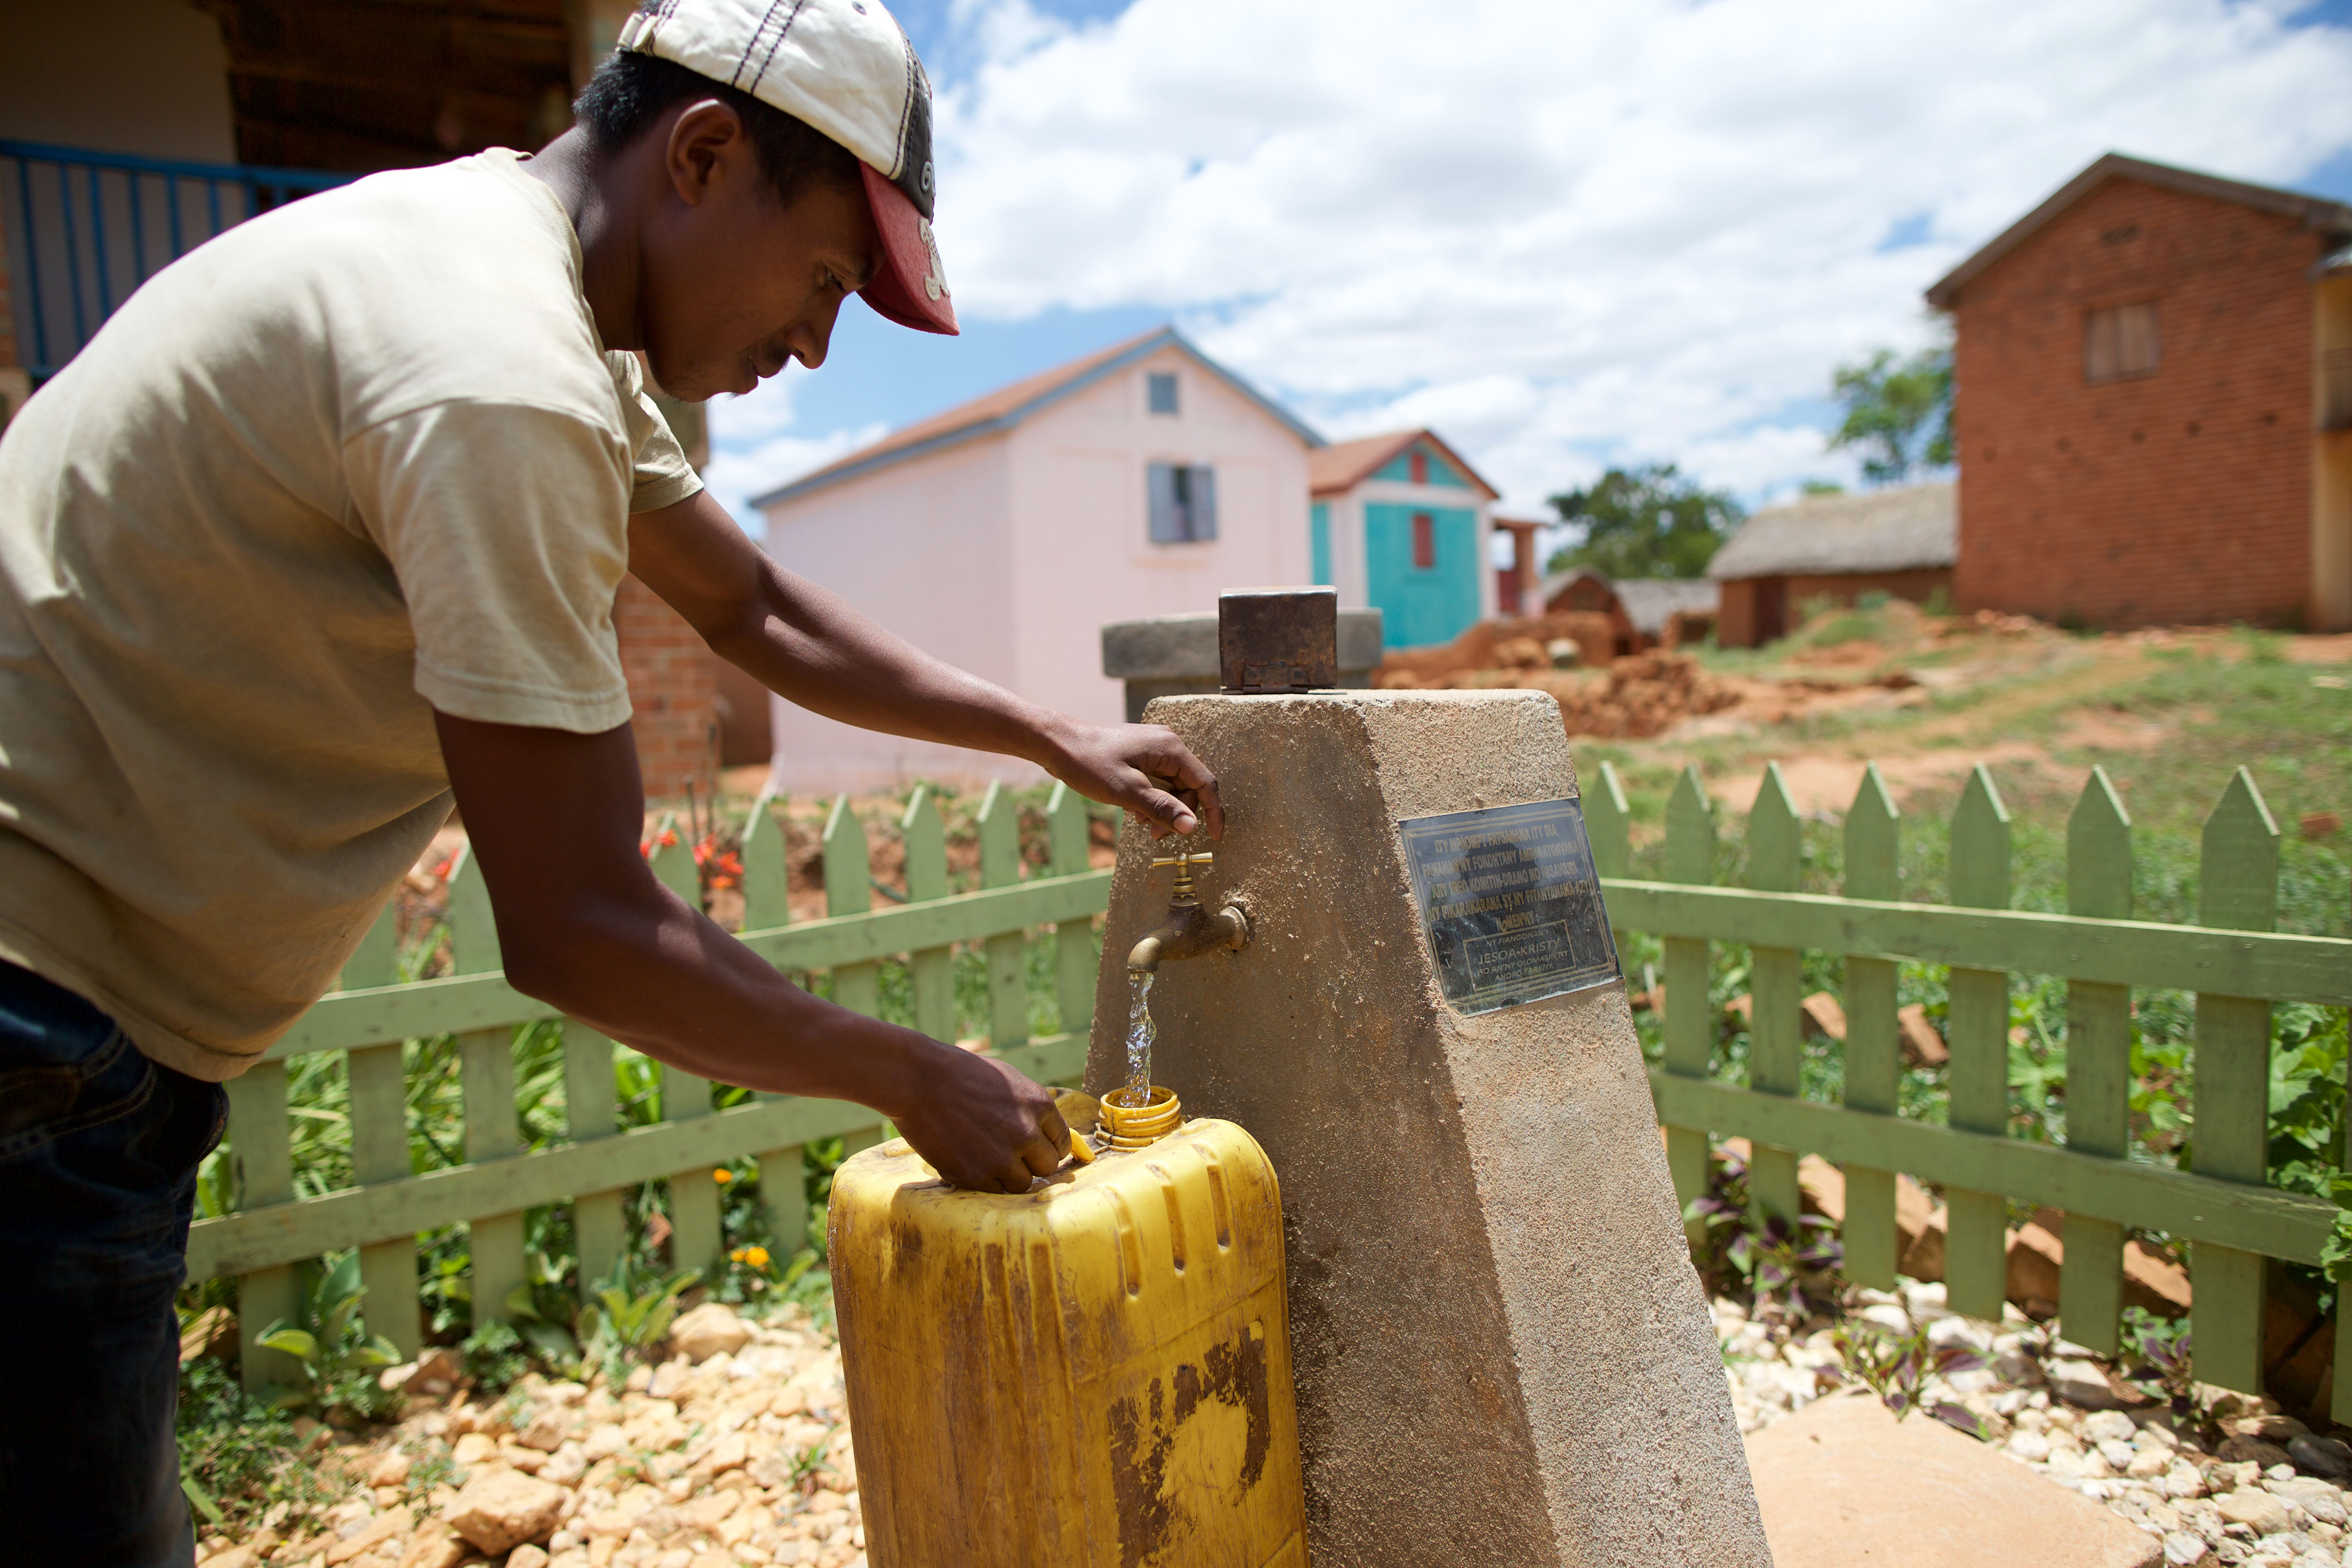 LDS Charities works with local partners to build water and sanitation systems and teach communities about system maintenance, empowering them to meet their long-term water needs.